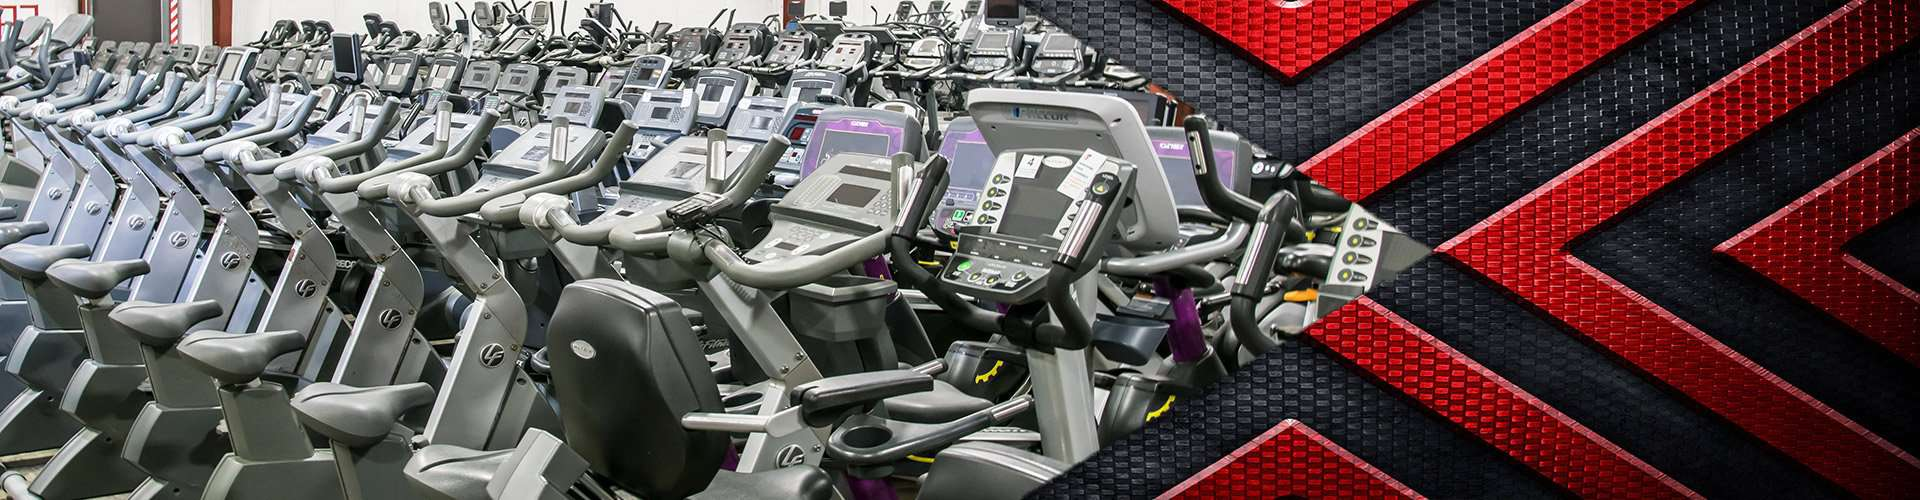 About Pound4Pound Used Fitness Equipment